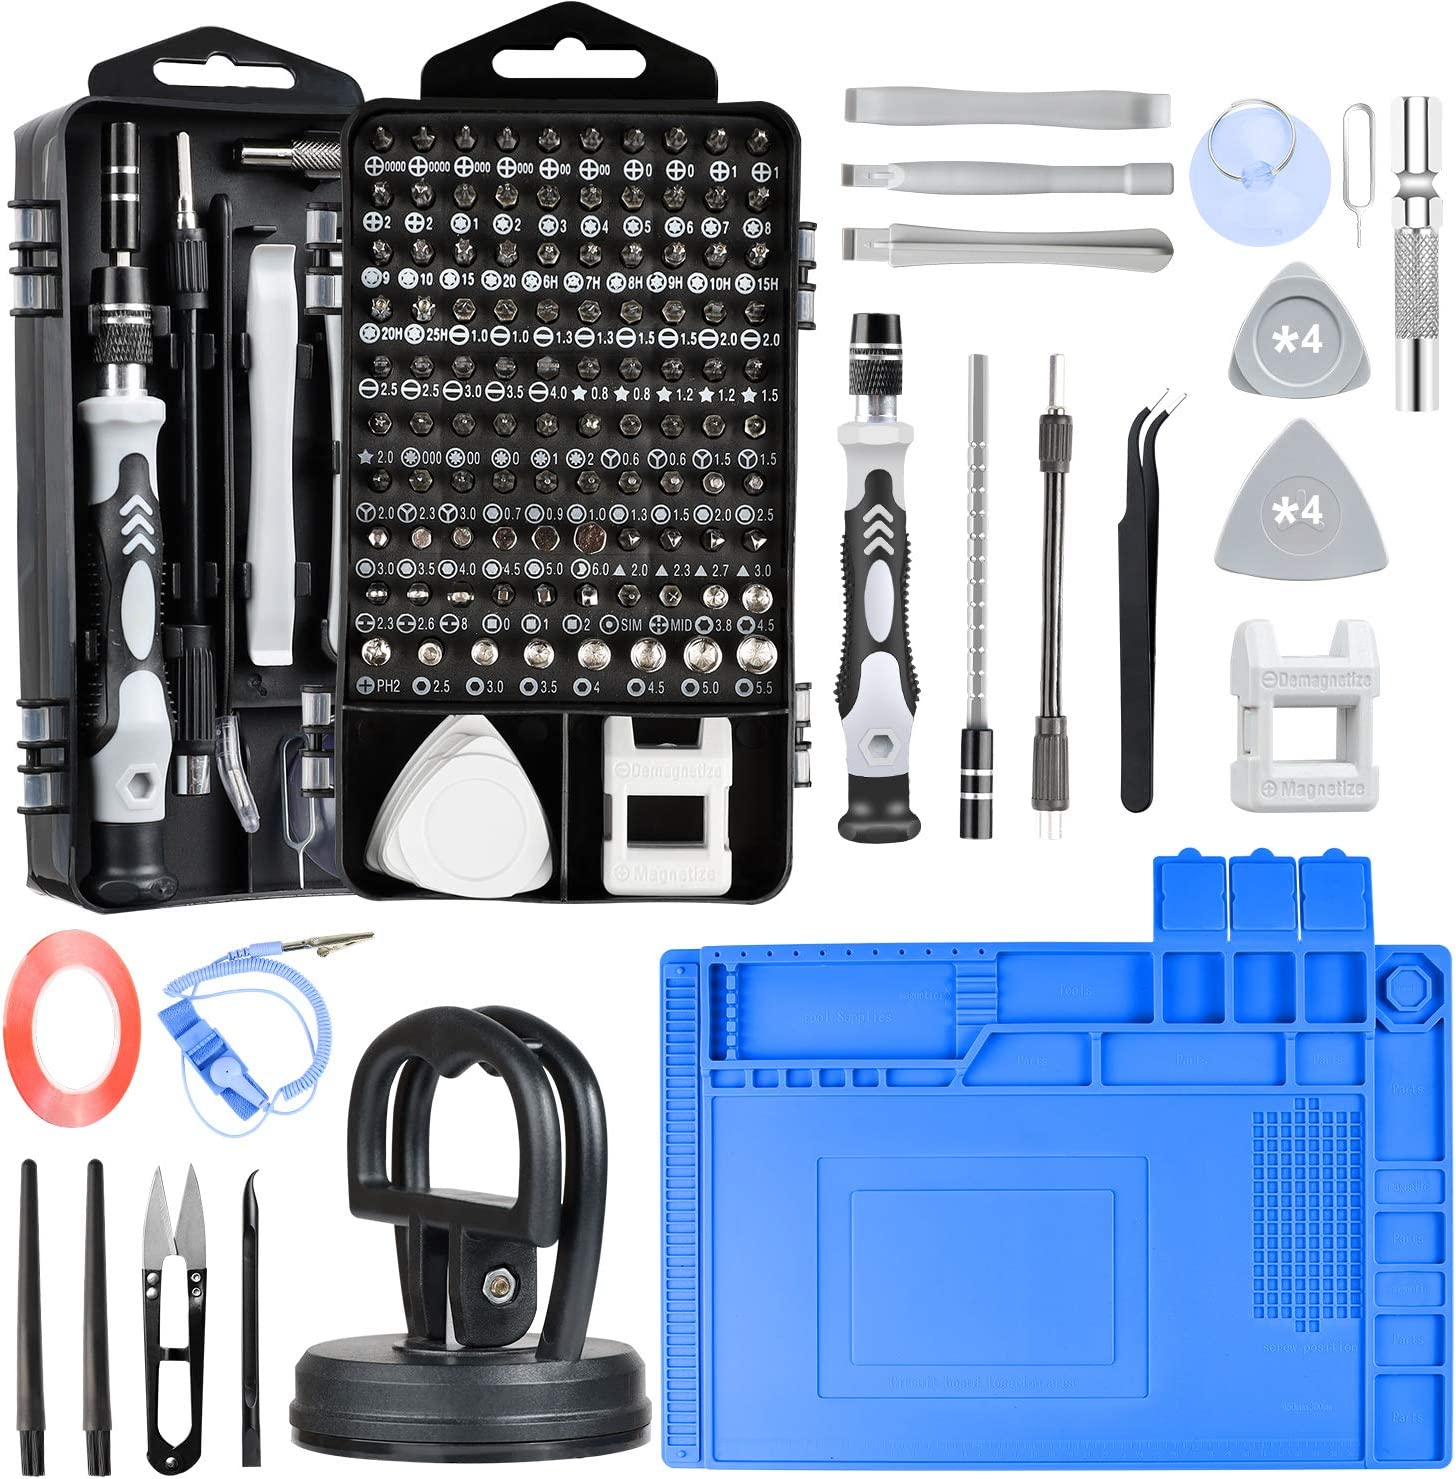 Eyeglass Magnetic Small Pocket Screwdriver Bit Set for Phone Game Console and Ring Doorbell Electronics Camera Laptop Tablet ELECKING 31 in 1 Mini Precision Screwdriver Set Watch